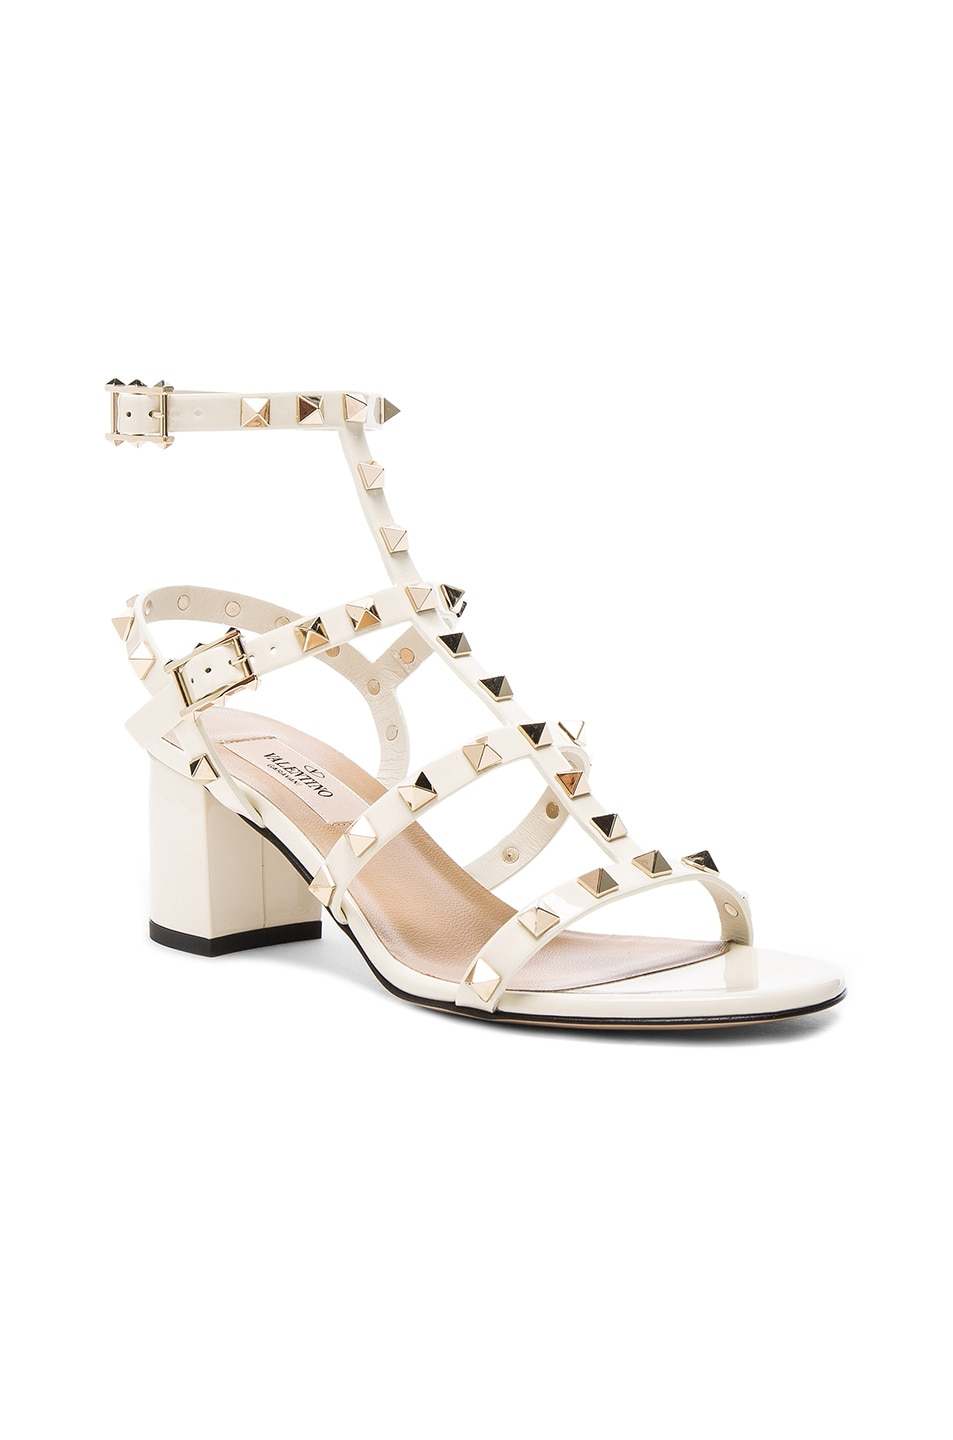 Image 2 of Valentino Patent Leather Rockstud Sandals in Light Ivory